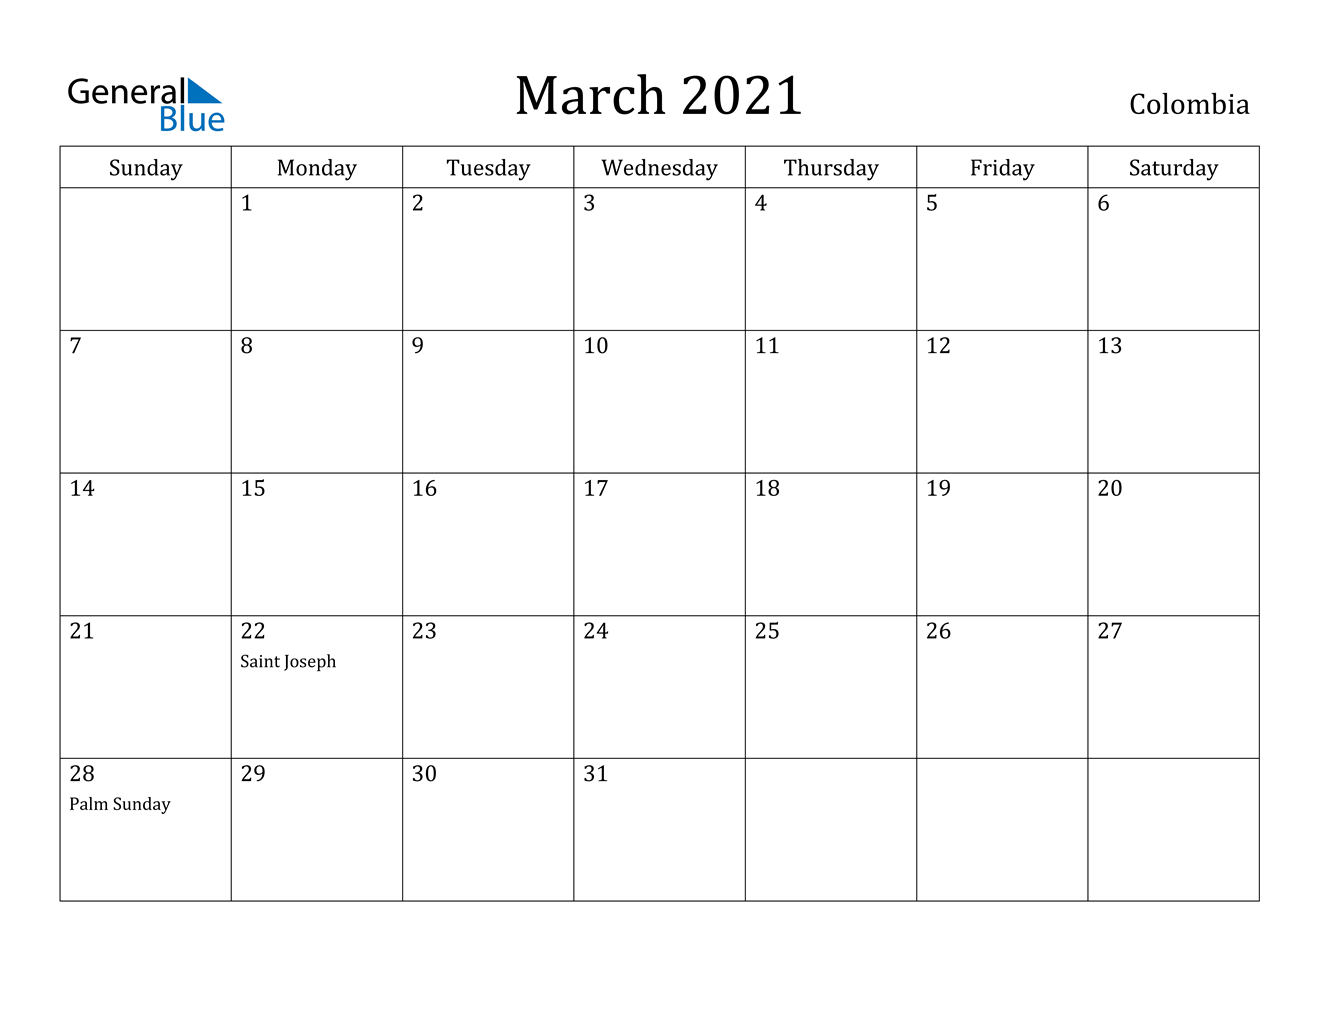 March 2021 Calendar - Colombia